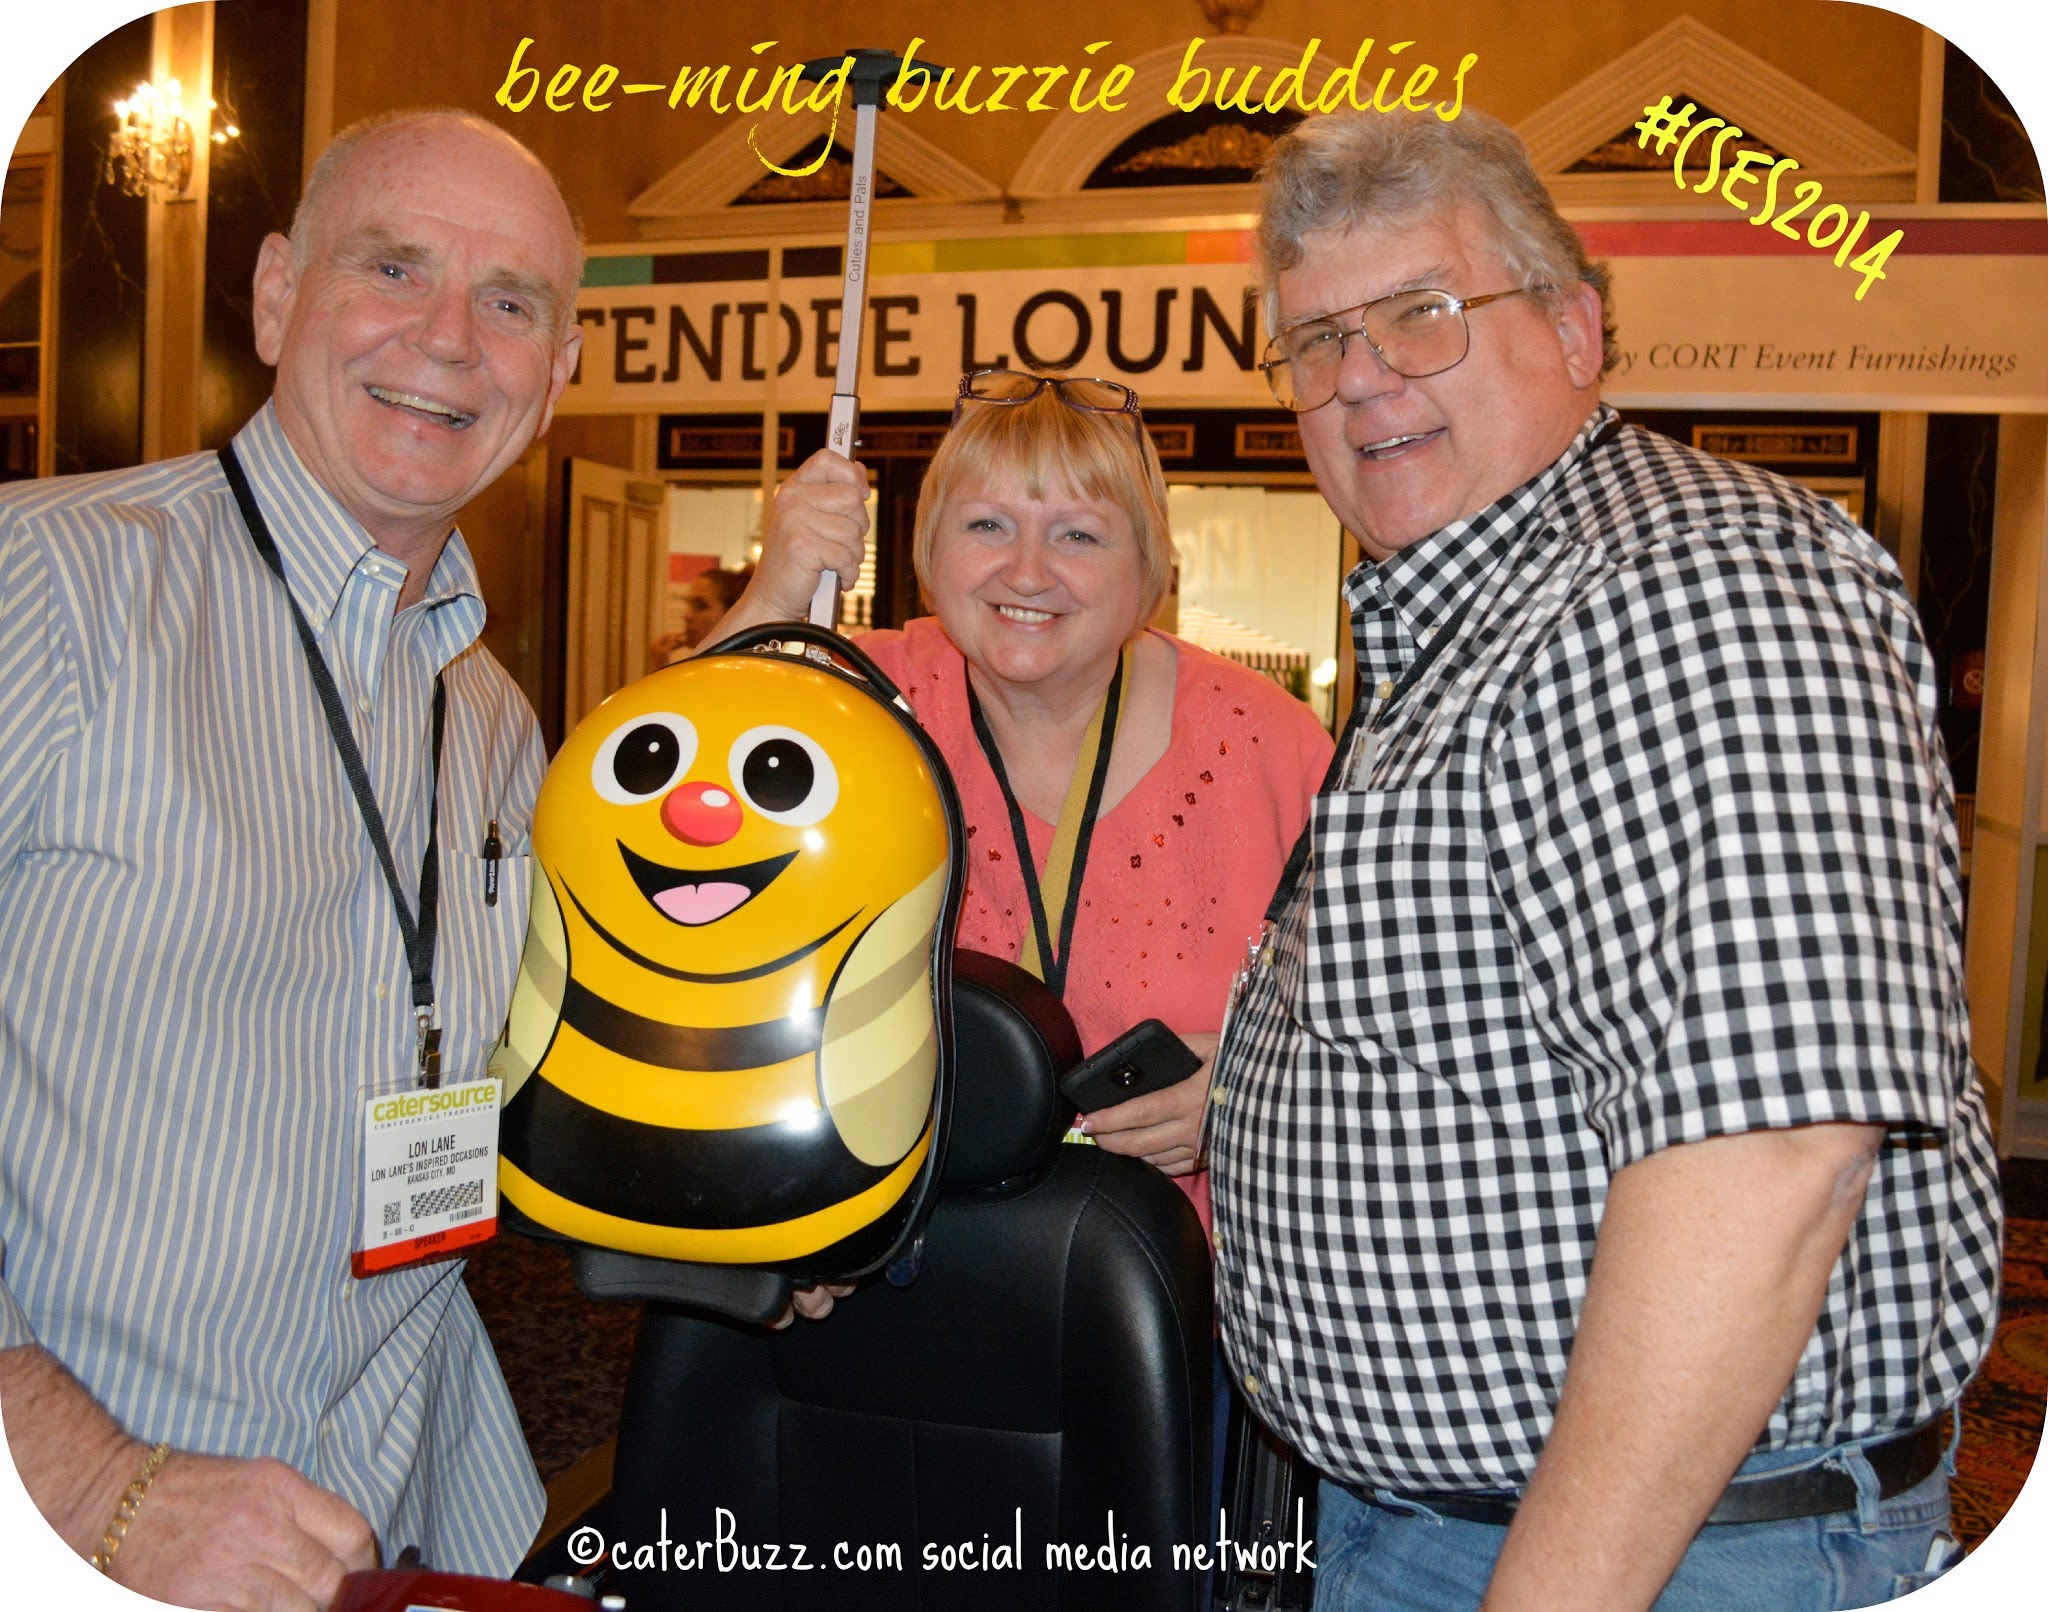 #caterbuzz buzzie meetup in the hallways at #cses2014; photo © caterBuzz.com social media network -